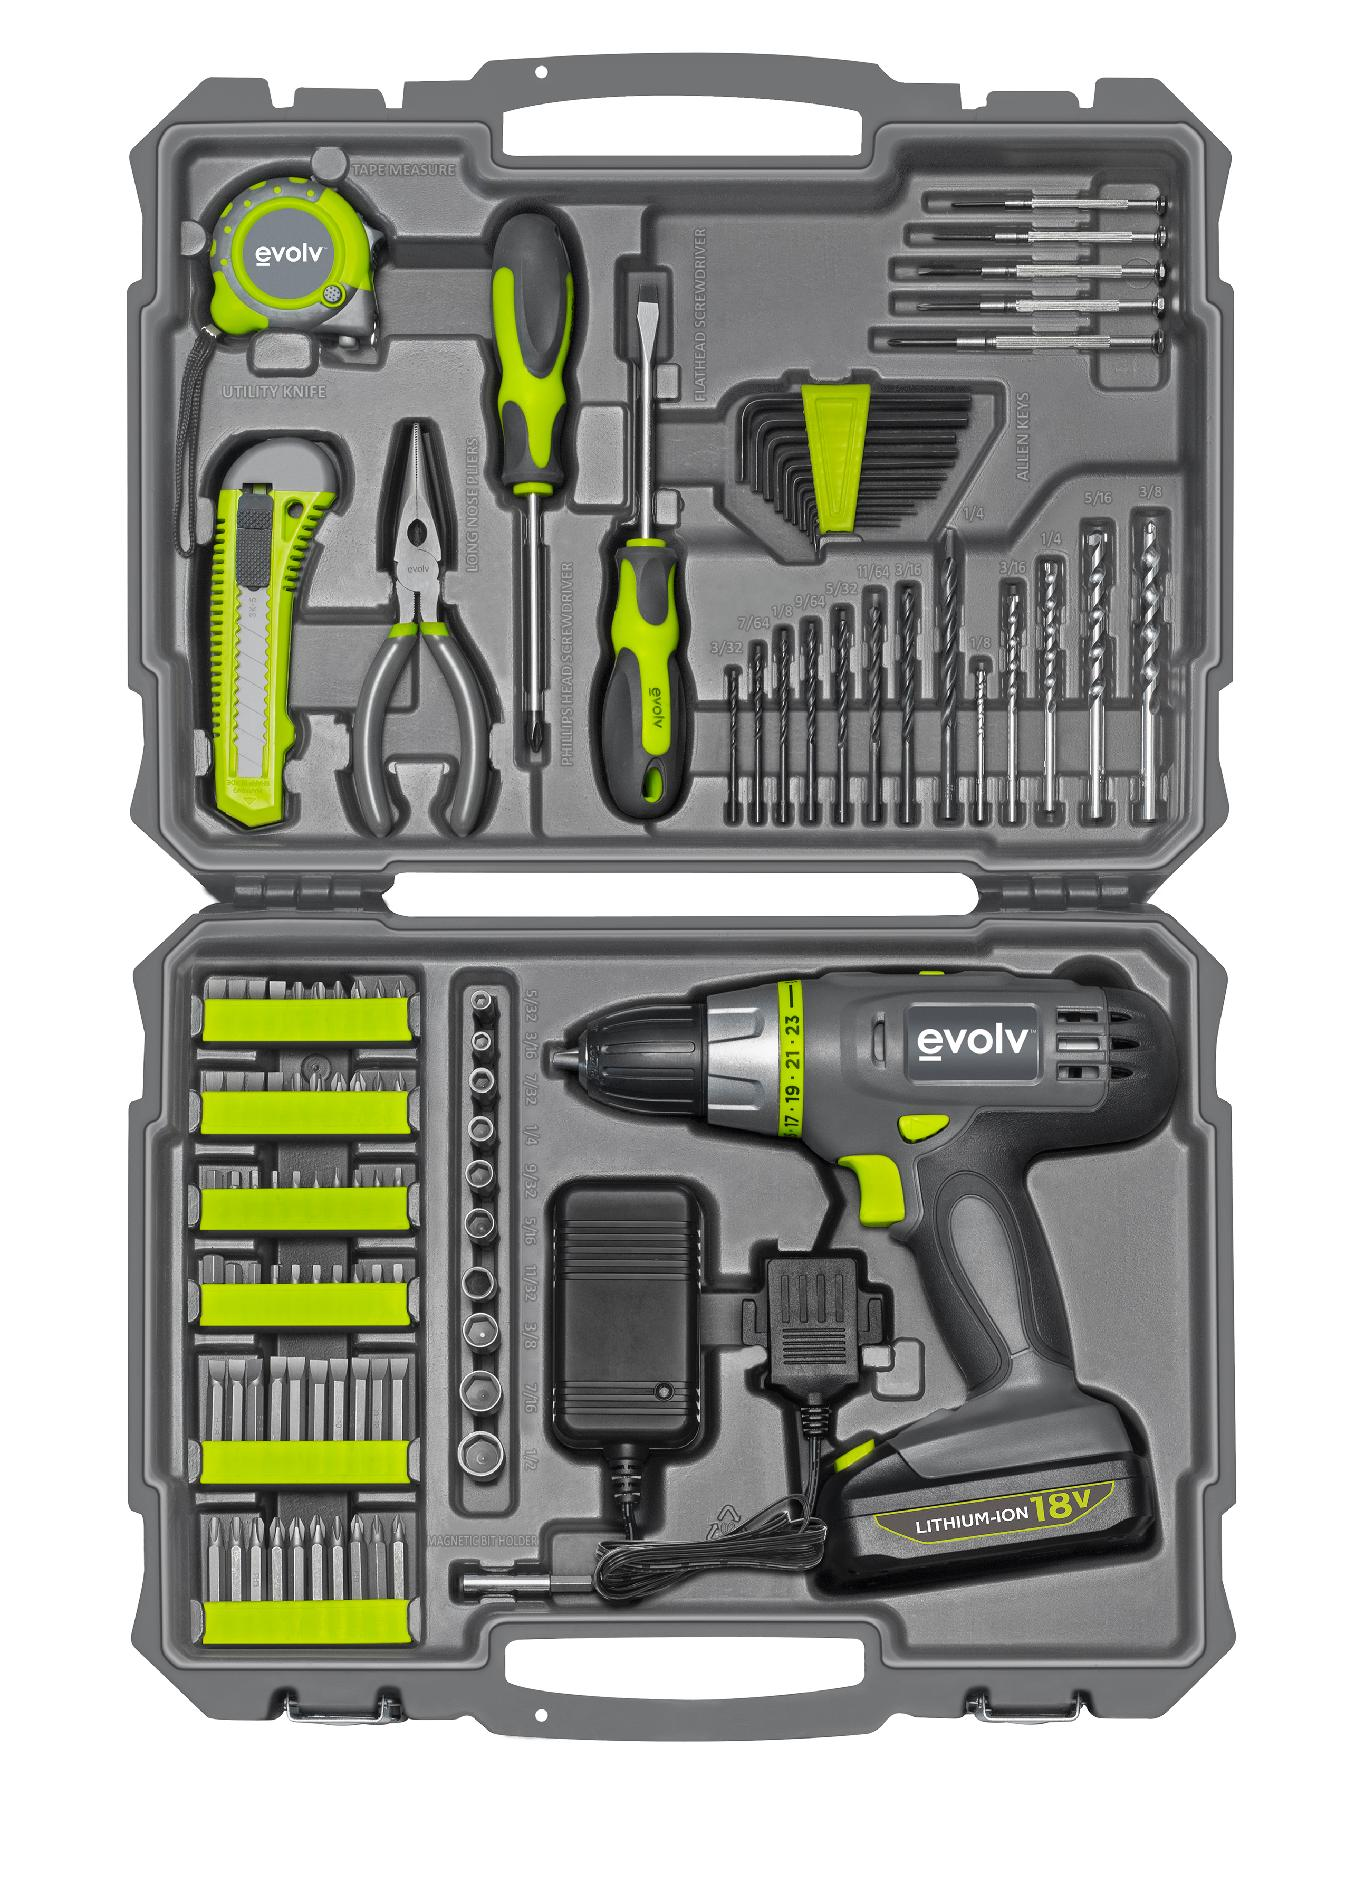 Evolv 107-Piece Cordless Lithium Drill & Project Toolkit